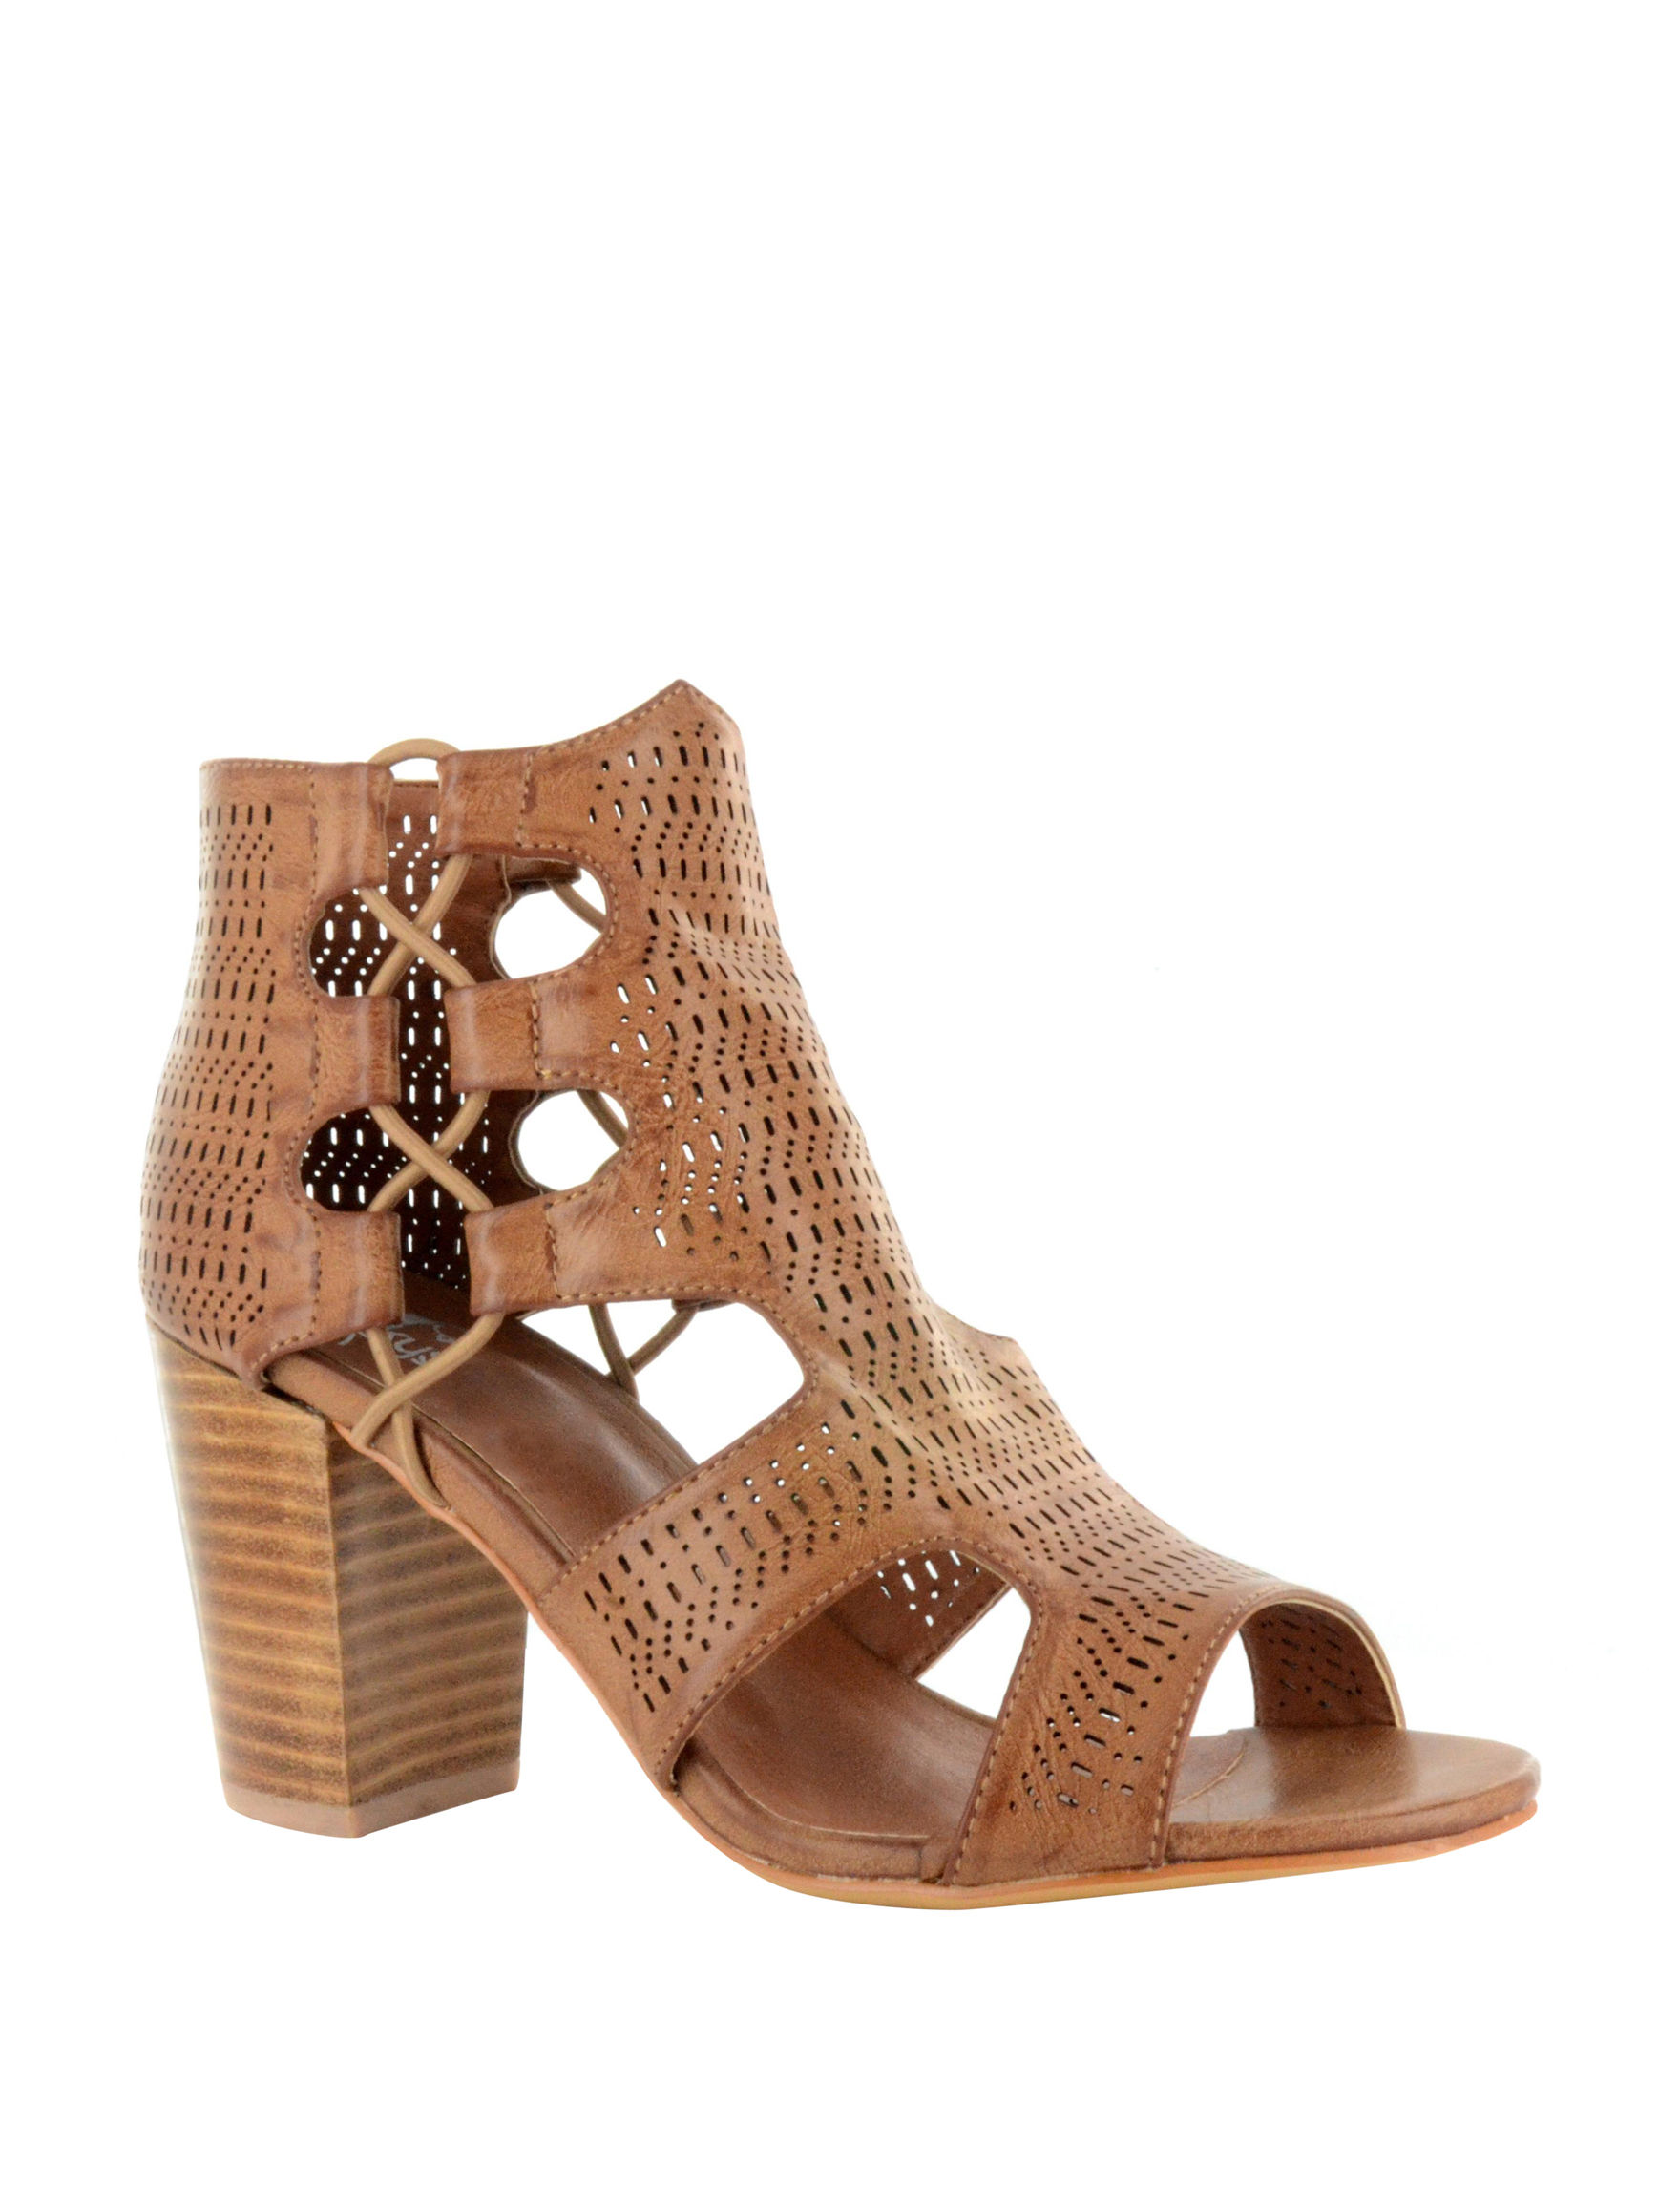 Corkys Brown Heeled Sandals